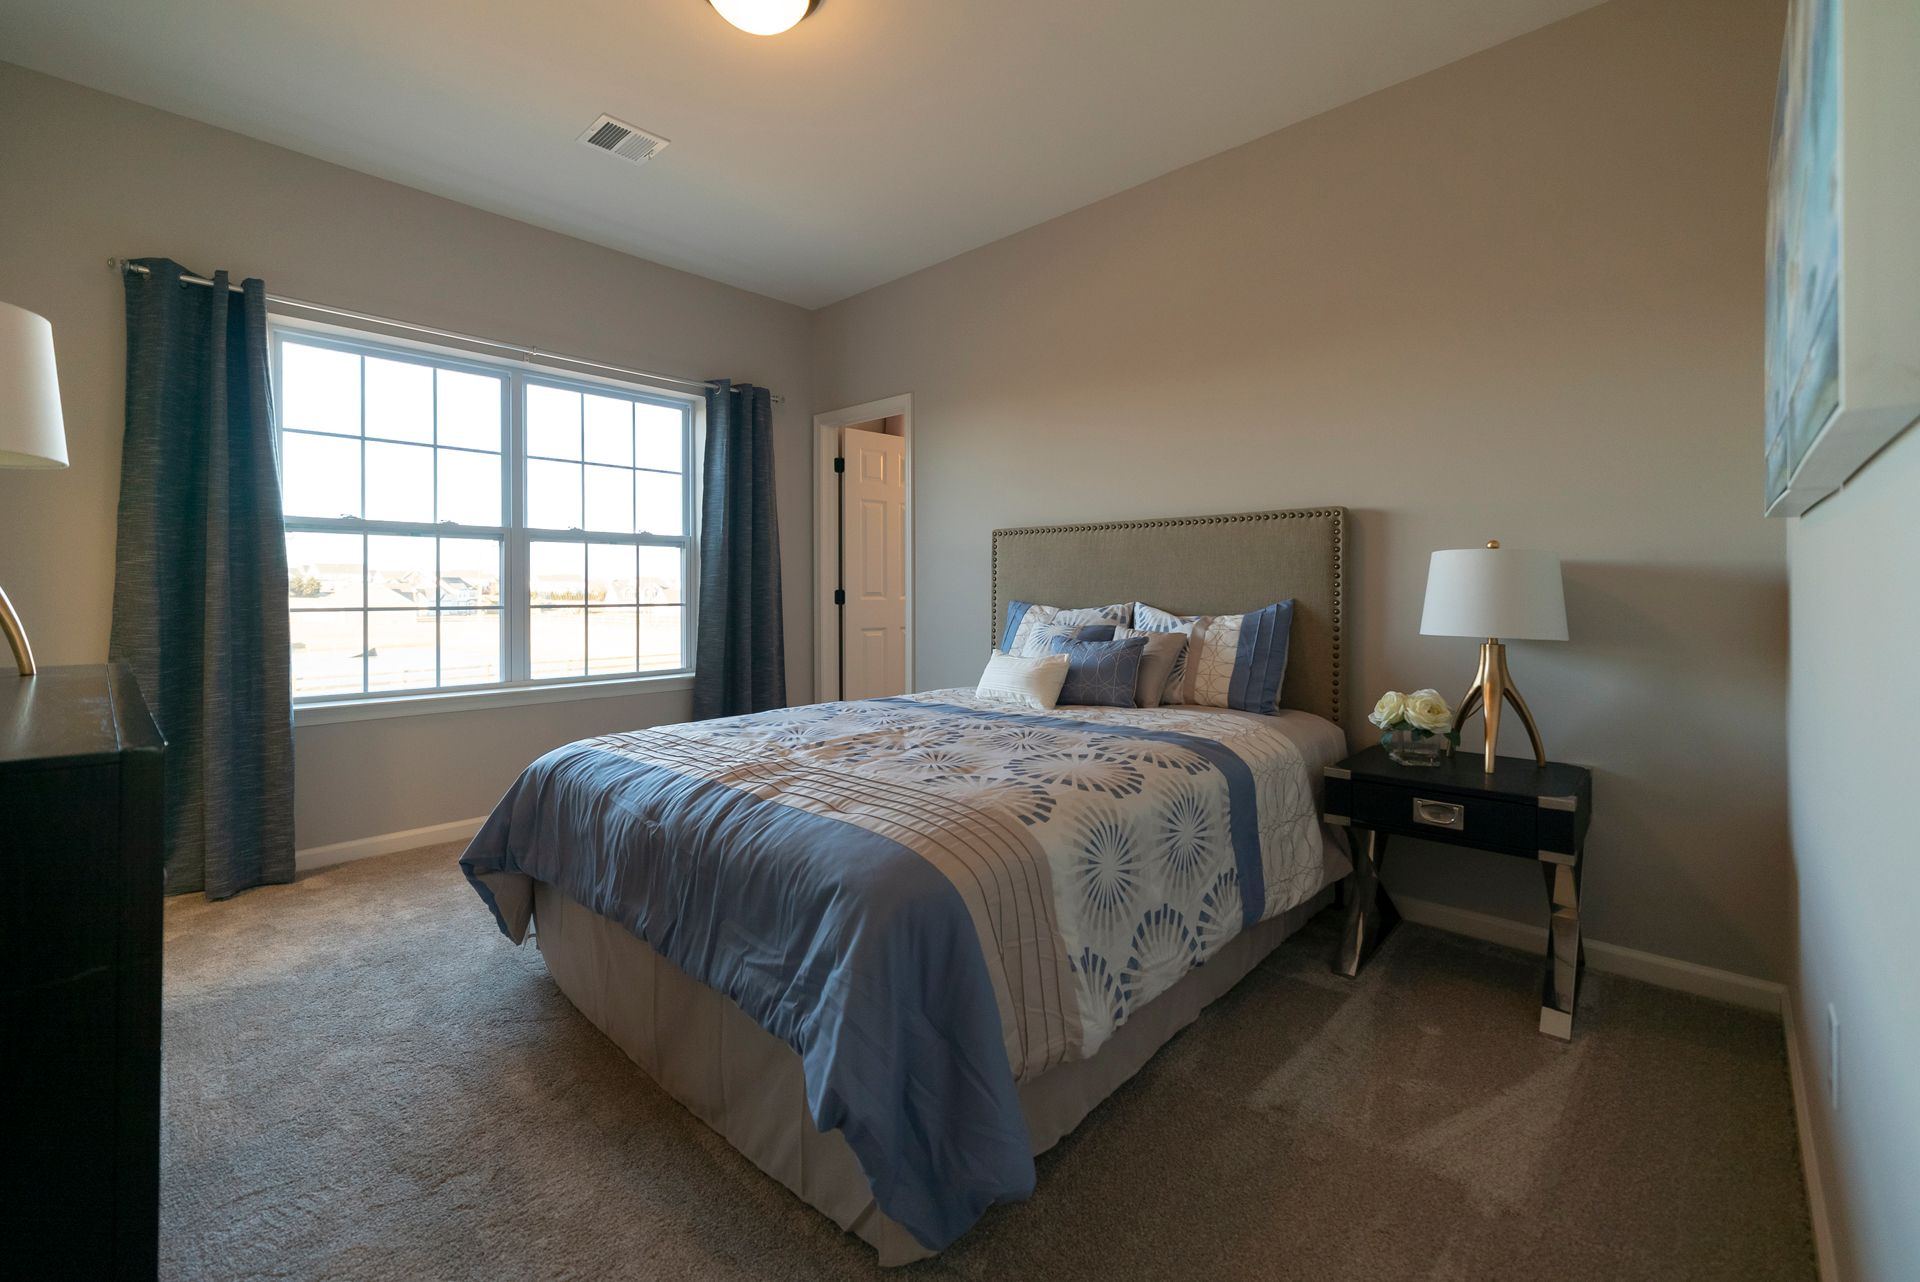 Bedroom featured in the Breckenridge Grande Traditional By Tuskes Homes - Infill